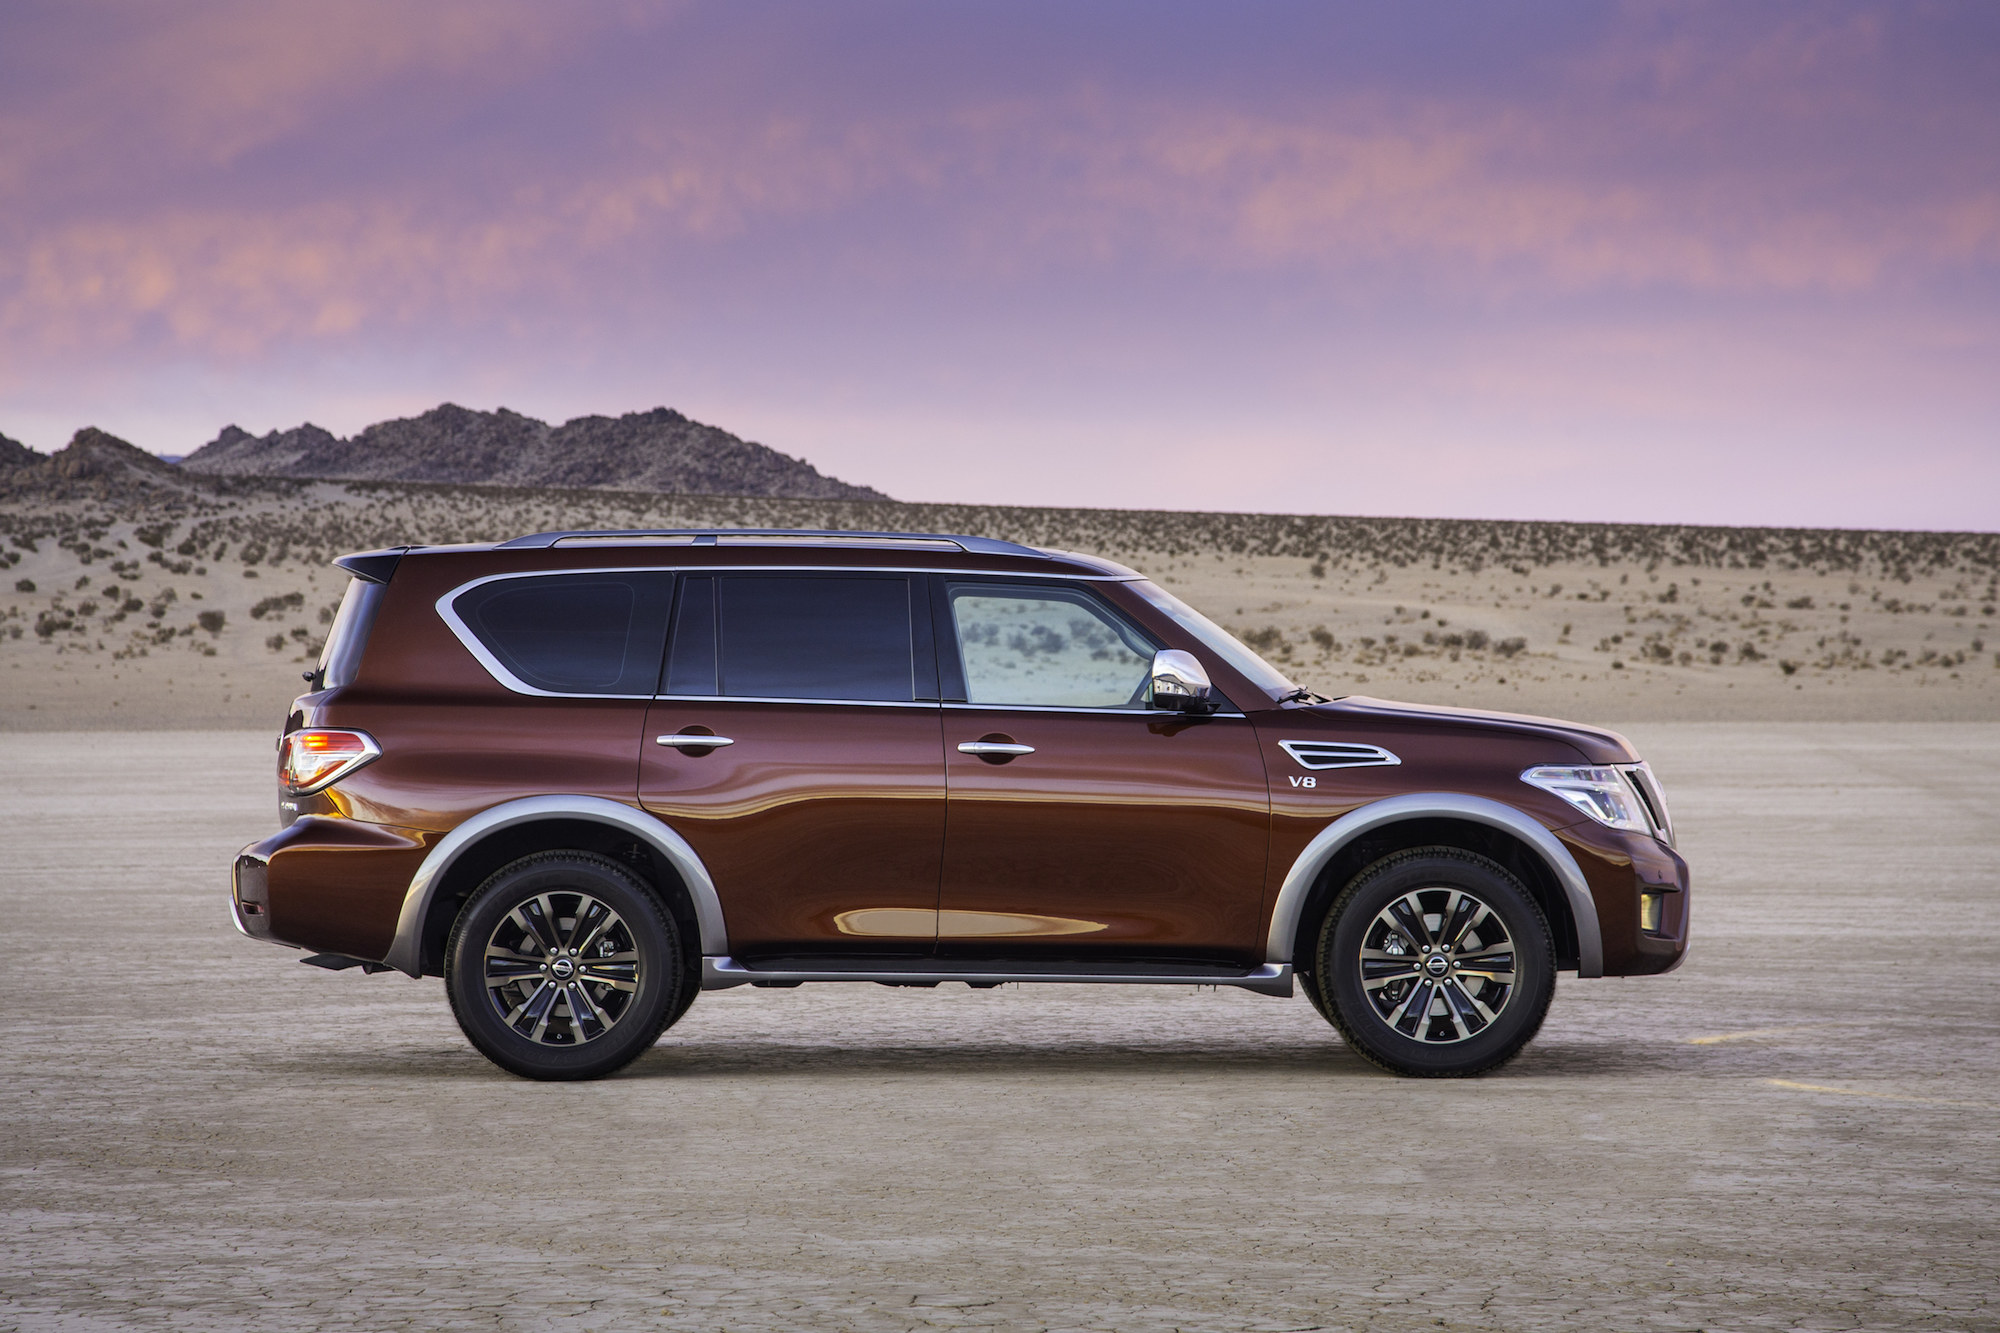 2017 nissan armada quality review the car connection. Black Bedroom Furniture Sets. Home Design Ideas